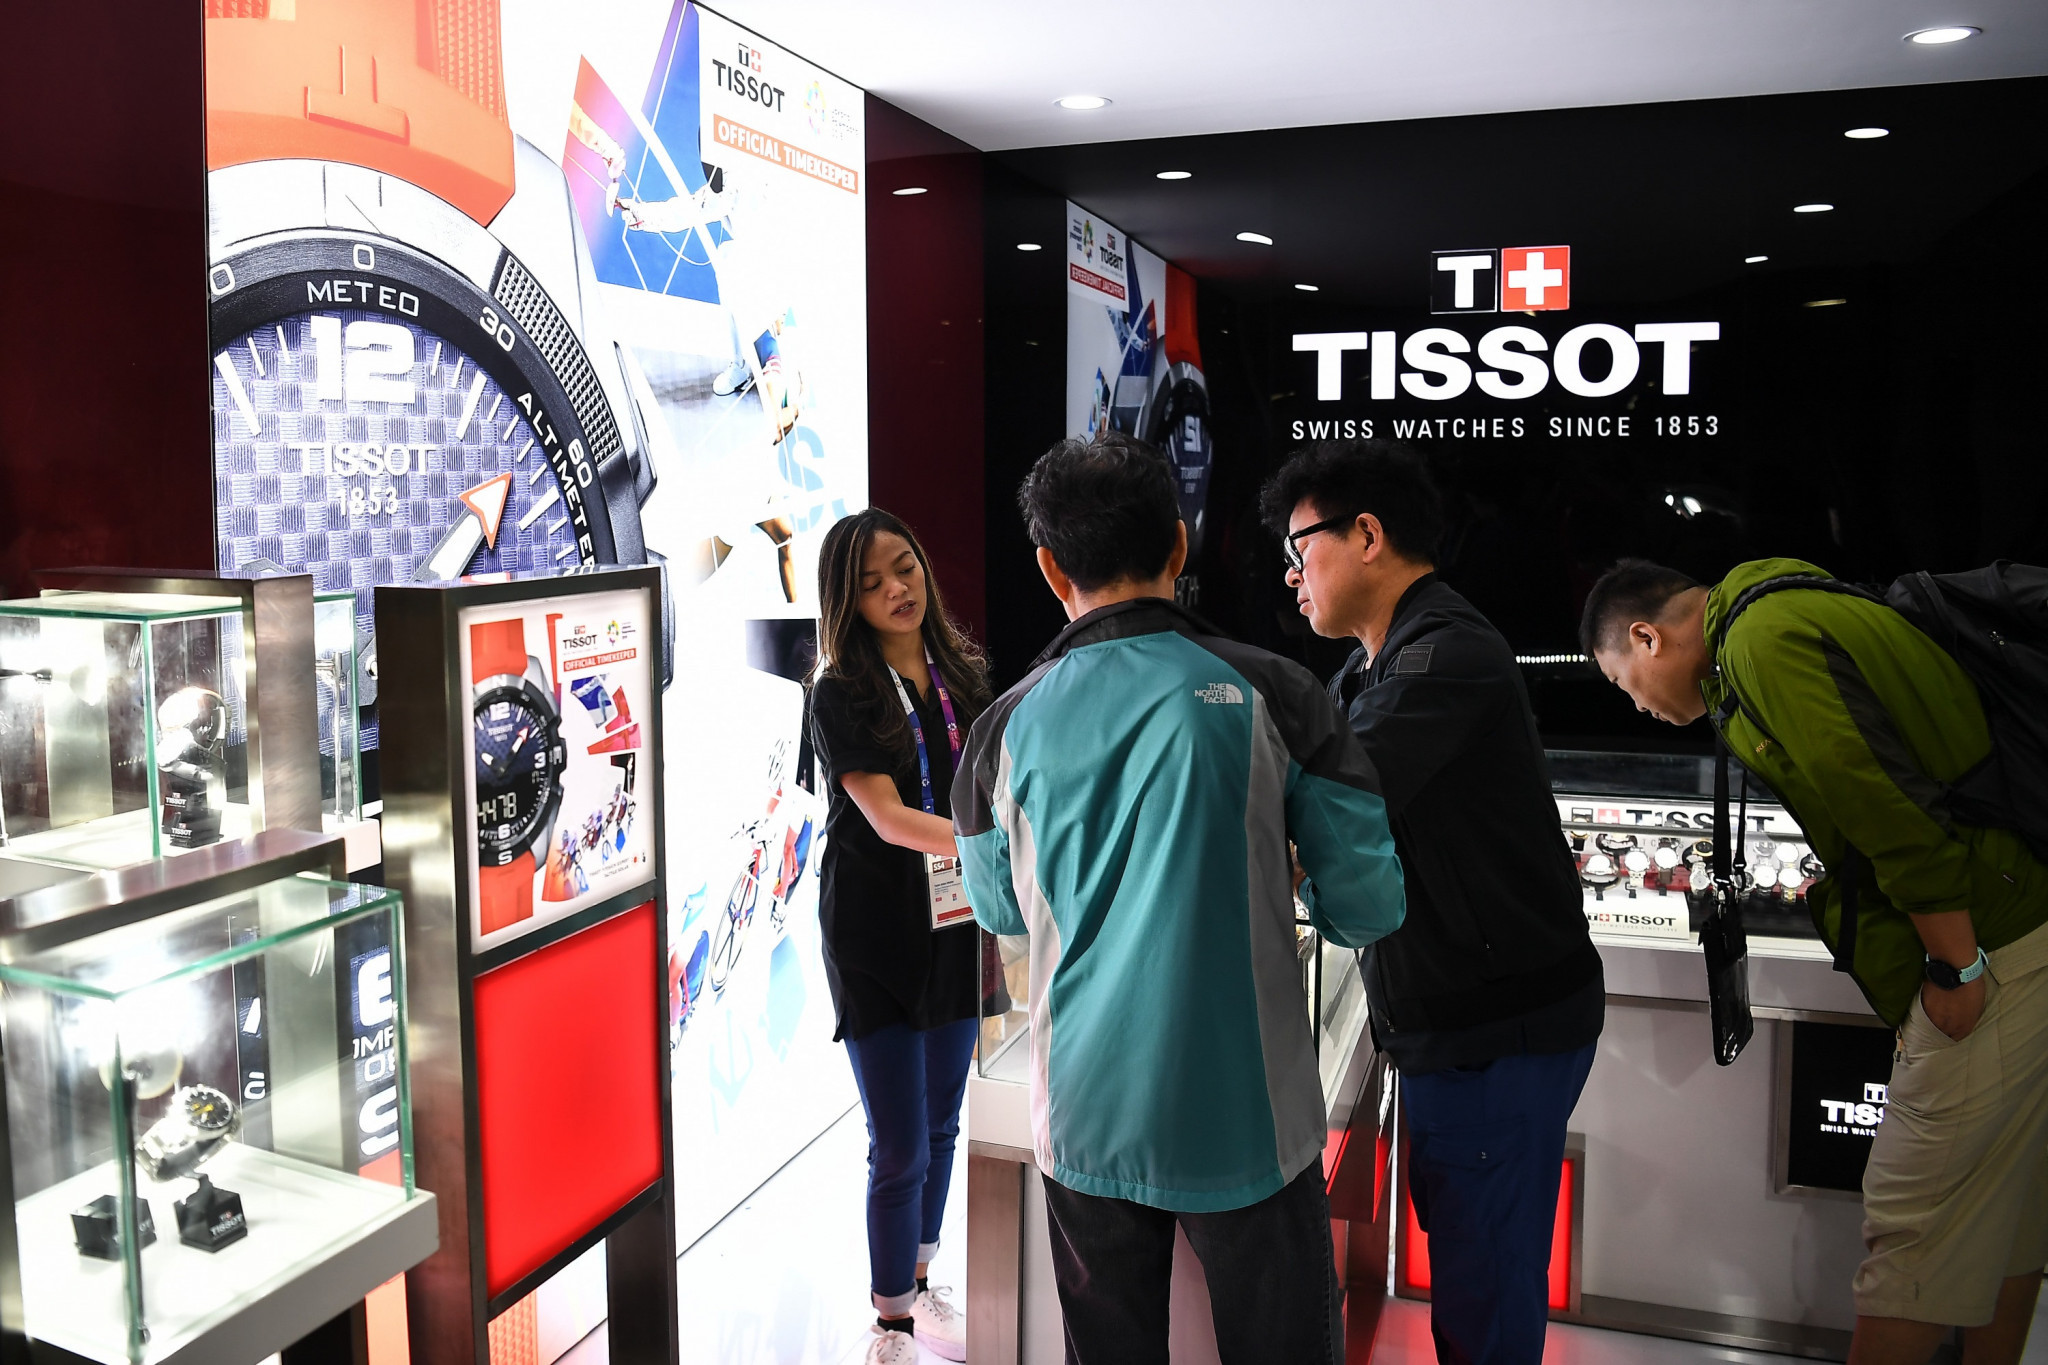 Journalists take the opportunity to view a booth dedicated to Tissot, the official timekeeper of the Games, in the Main Press Centre ©Getty Images